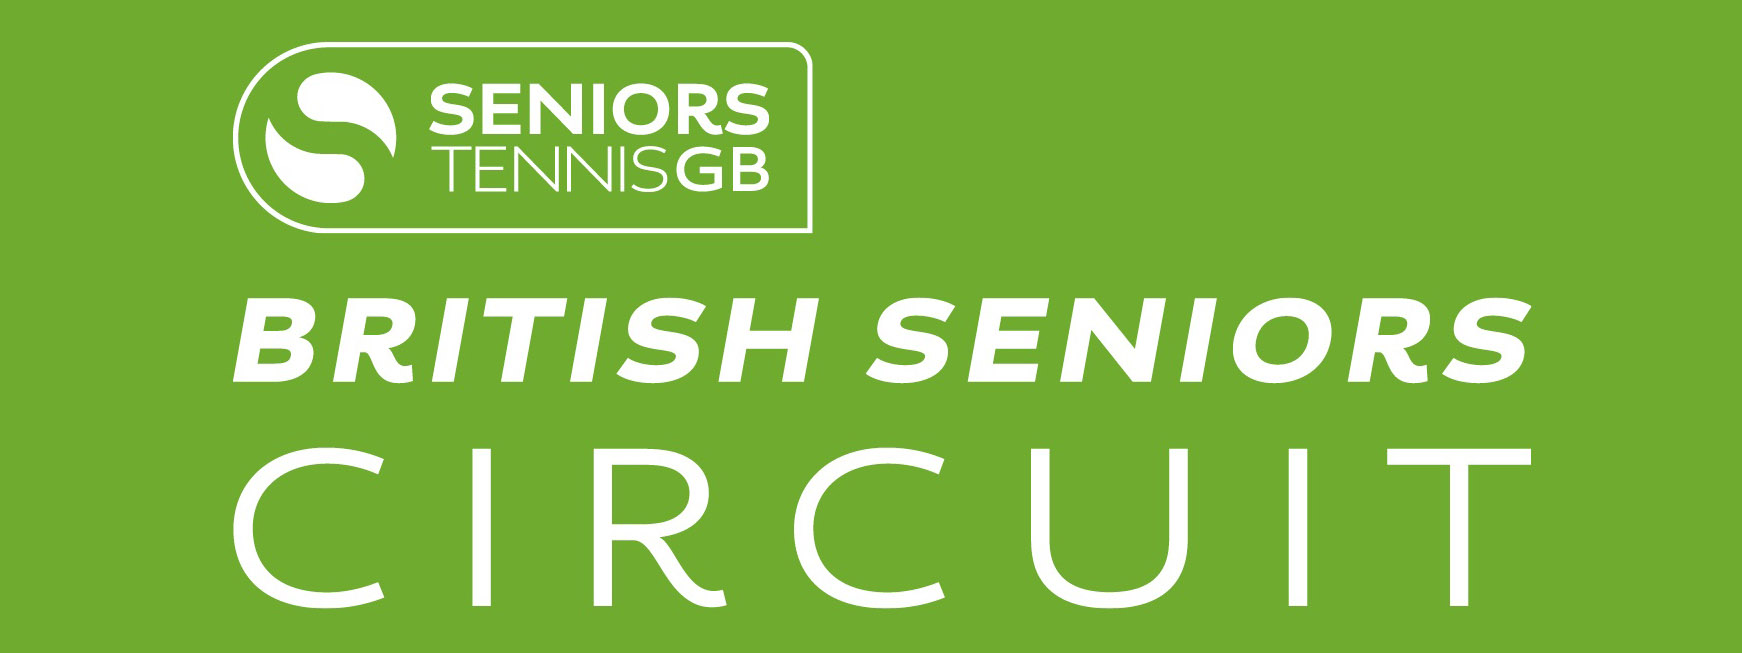 Seniors Tennis GB Circuit logo